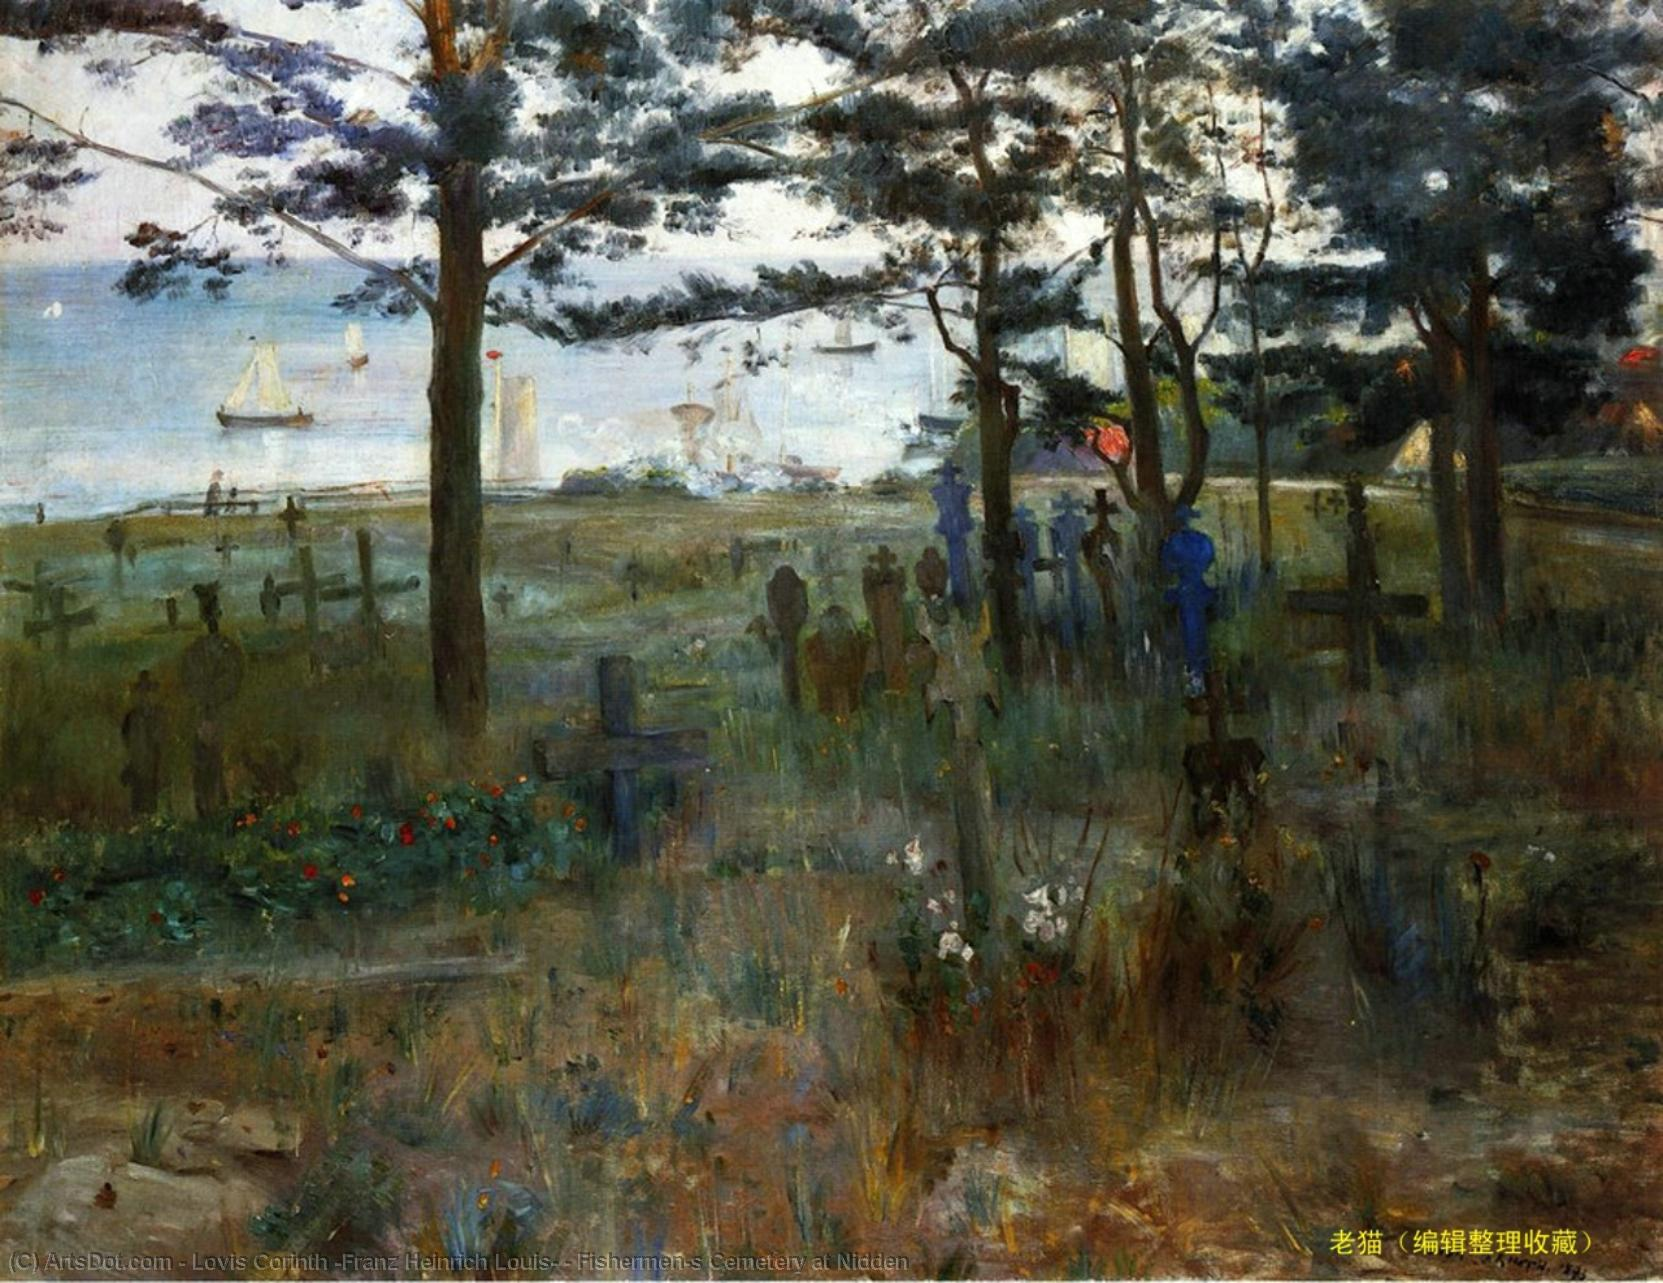 Wikioo.org - The Encyclopedia of Fine Arts - Painting, Artwork by Lovis Corinth (Franz Heinrich Louis) - Fishermen's Cemetery at Nidden